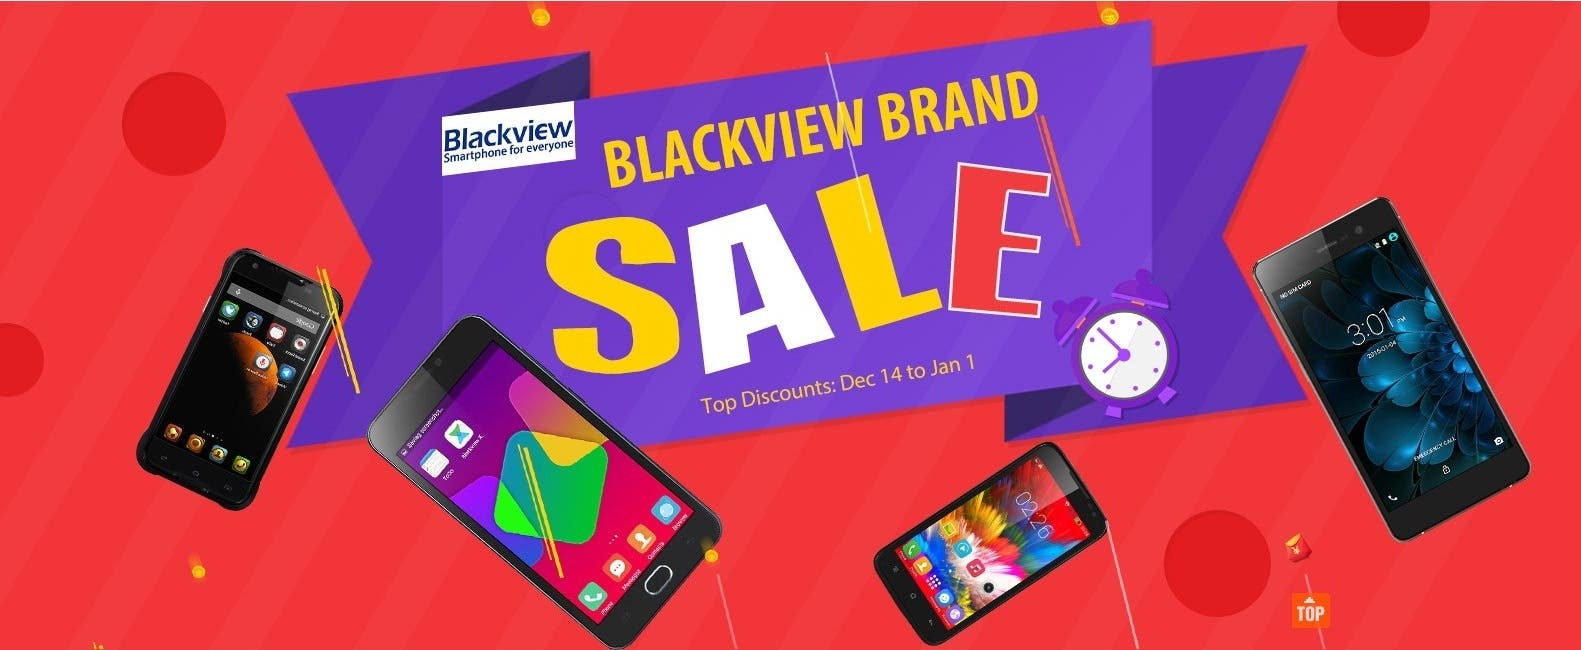 blackview phone offers